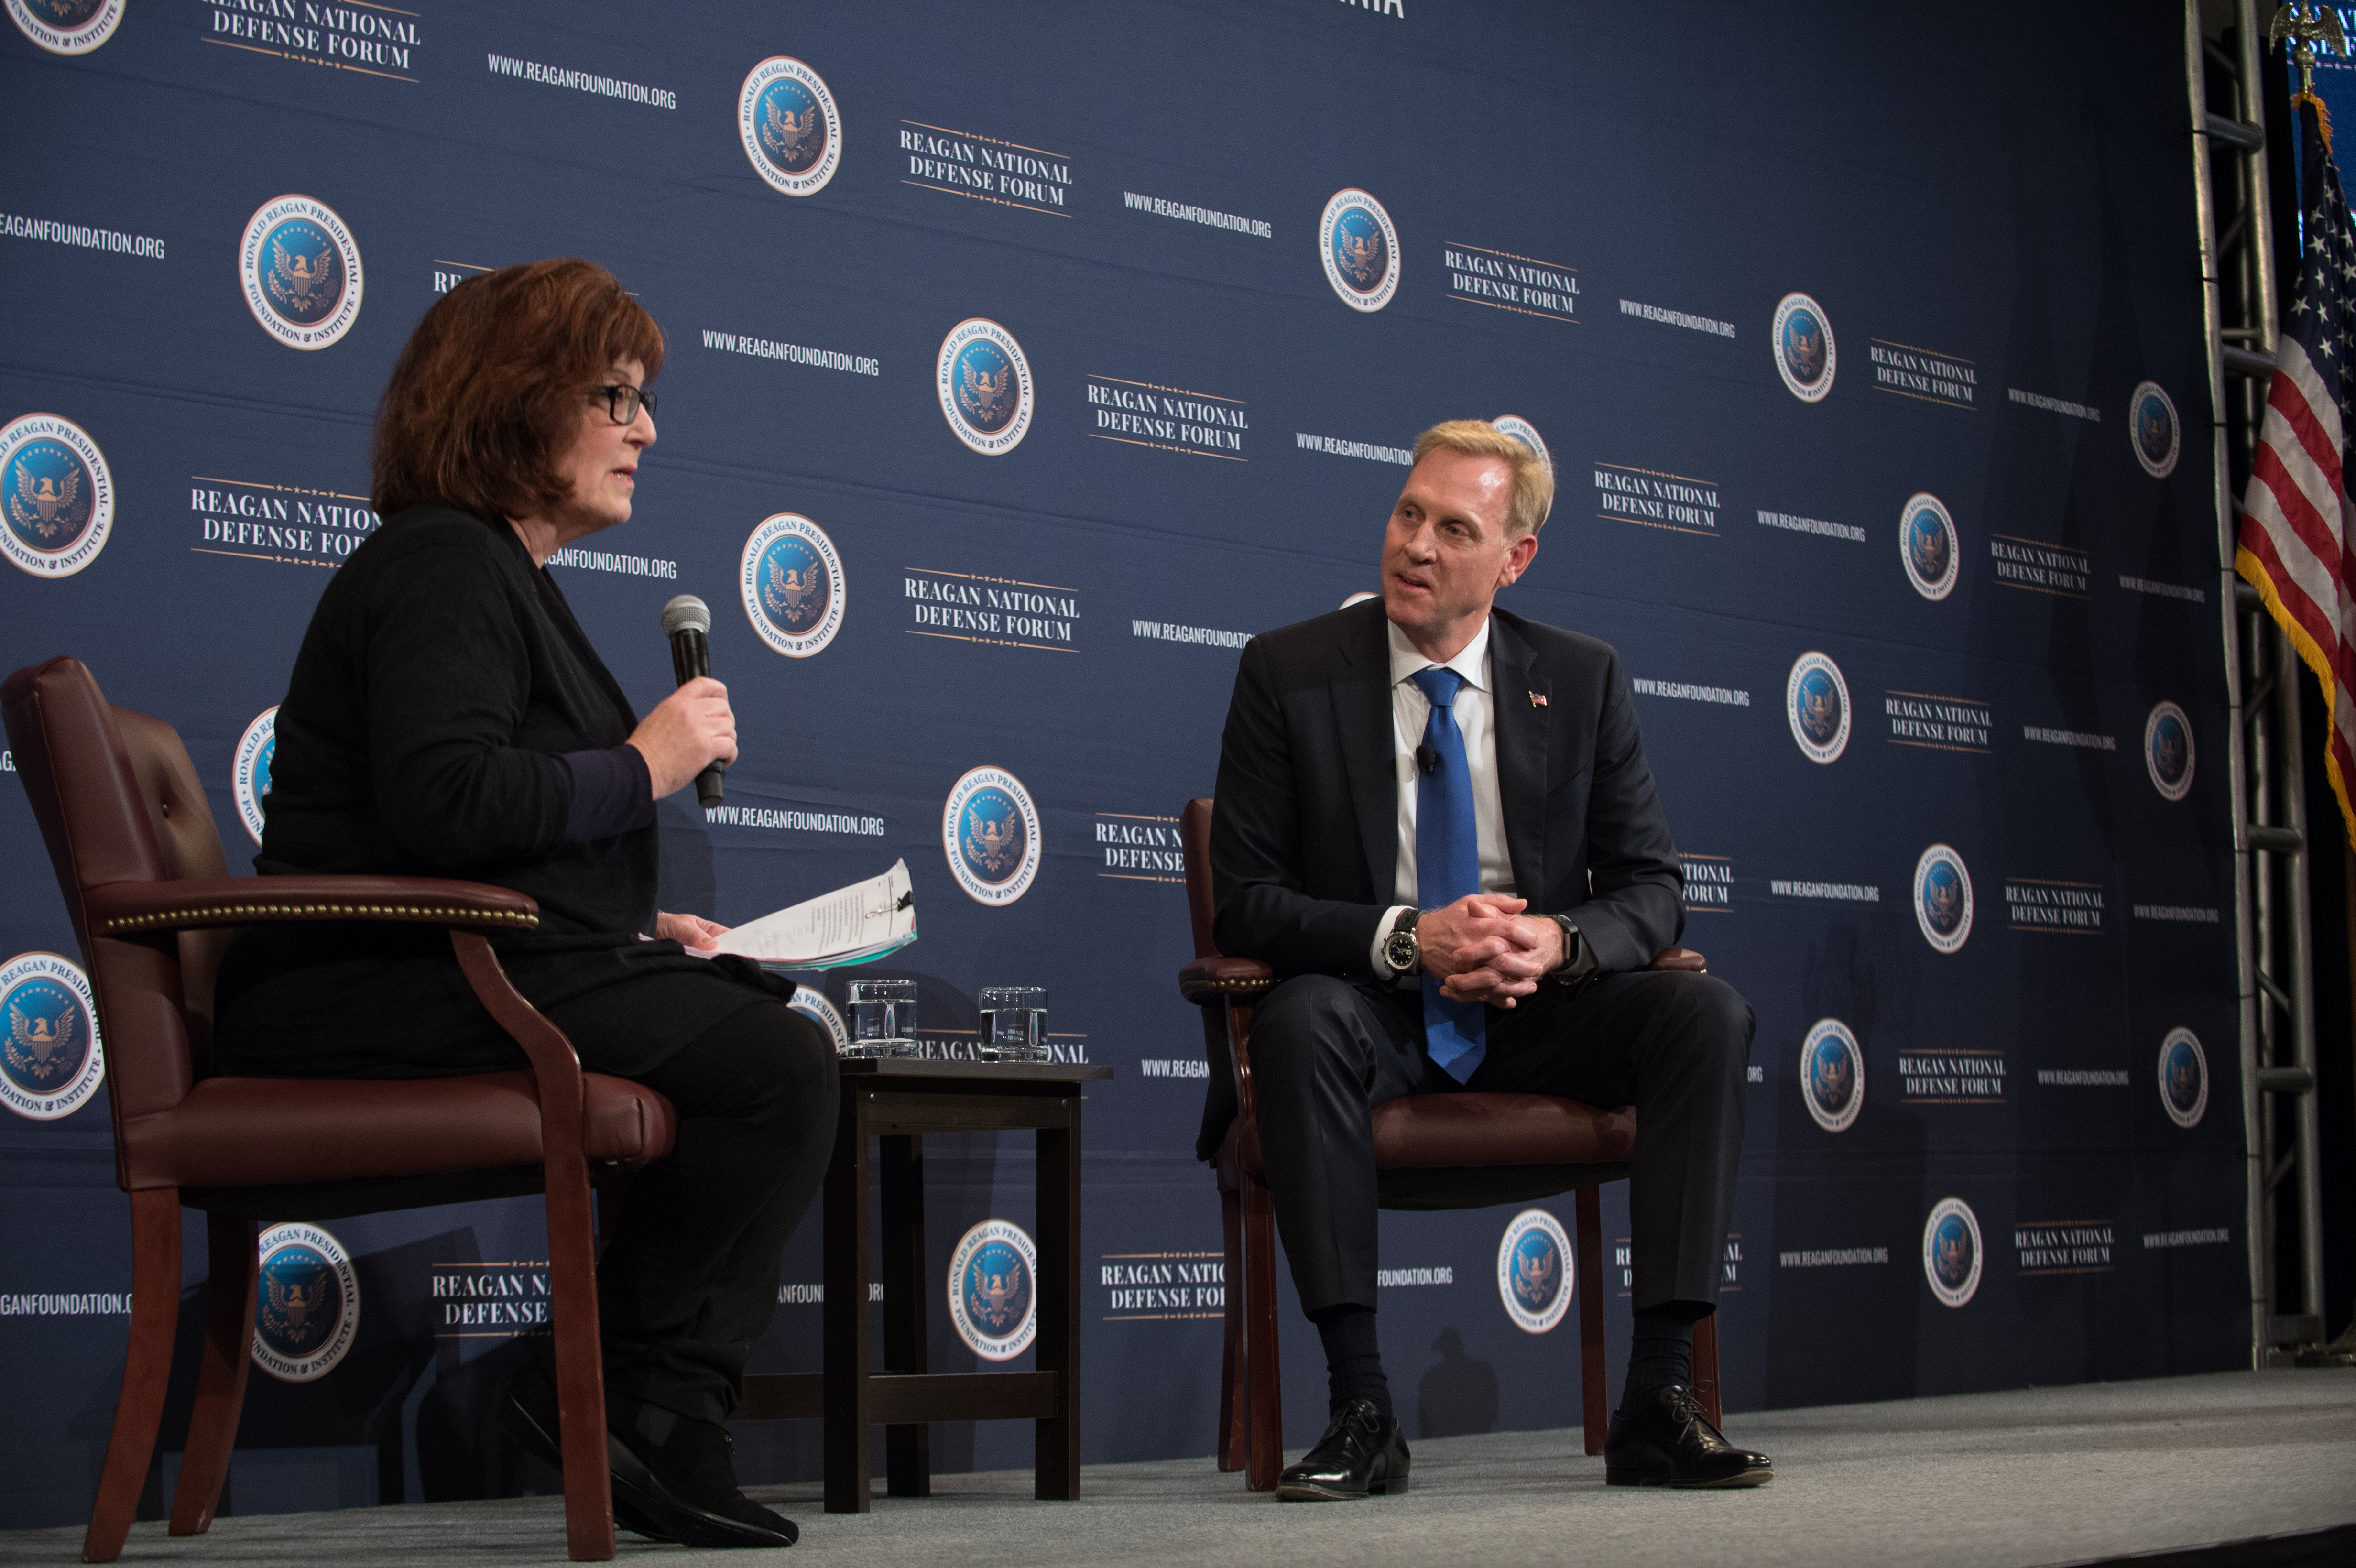 Event - Reagan National Defense Forum